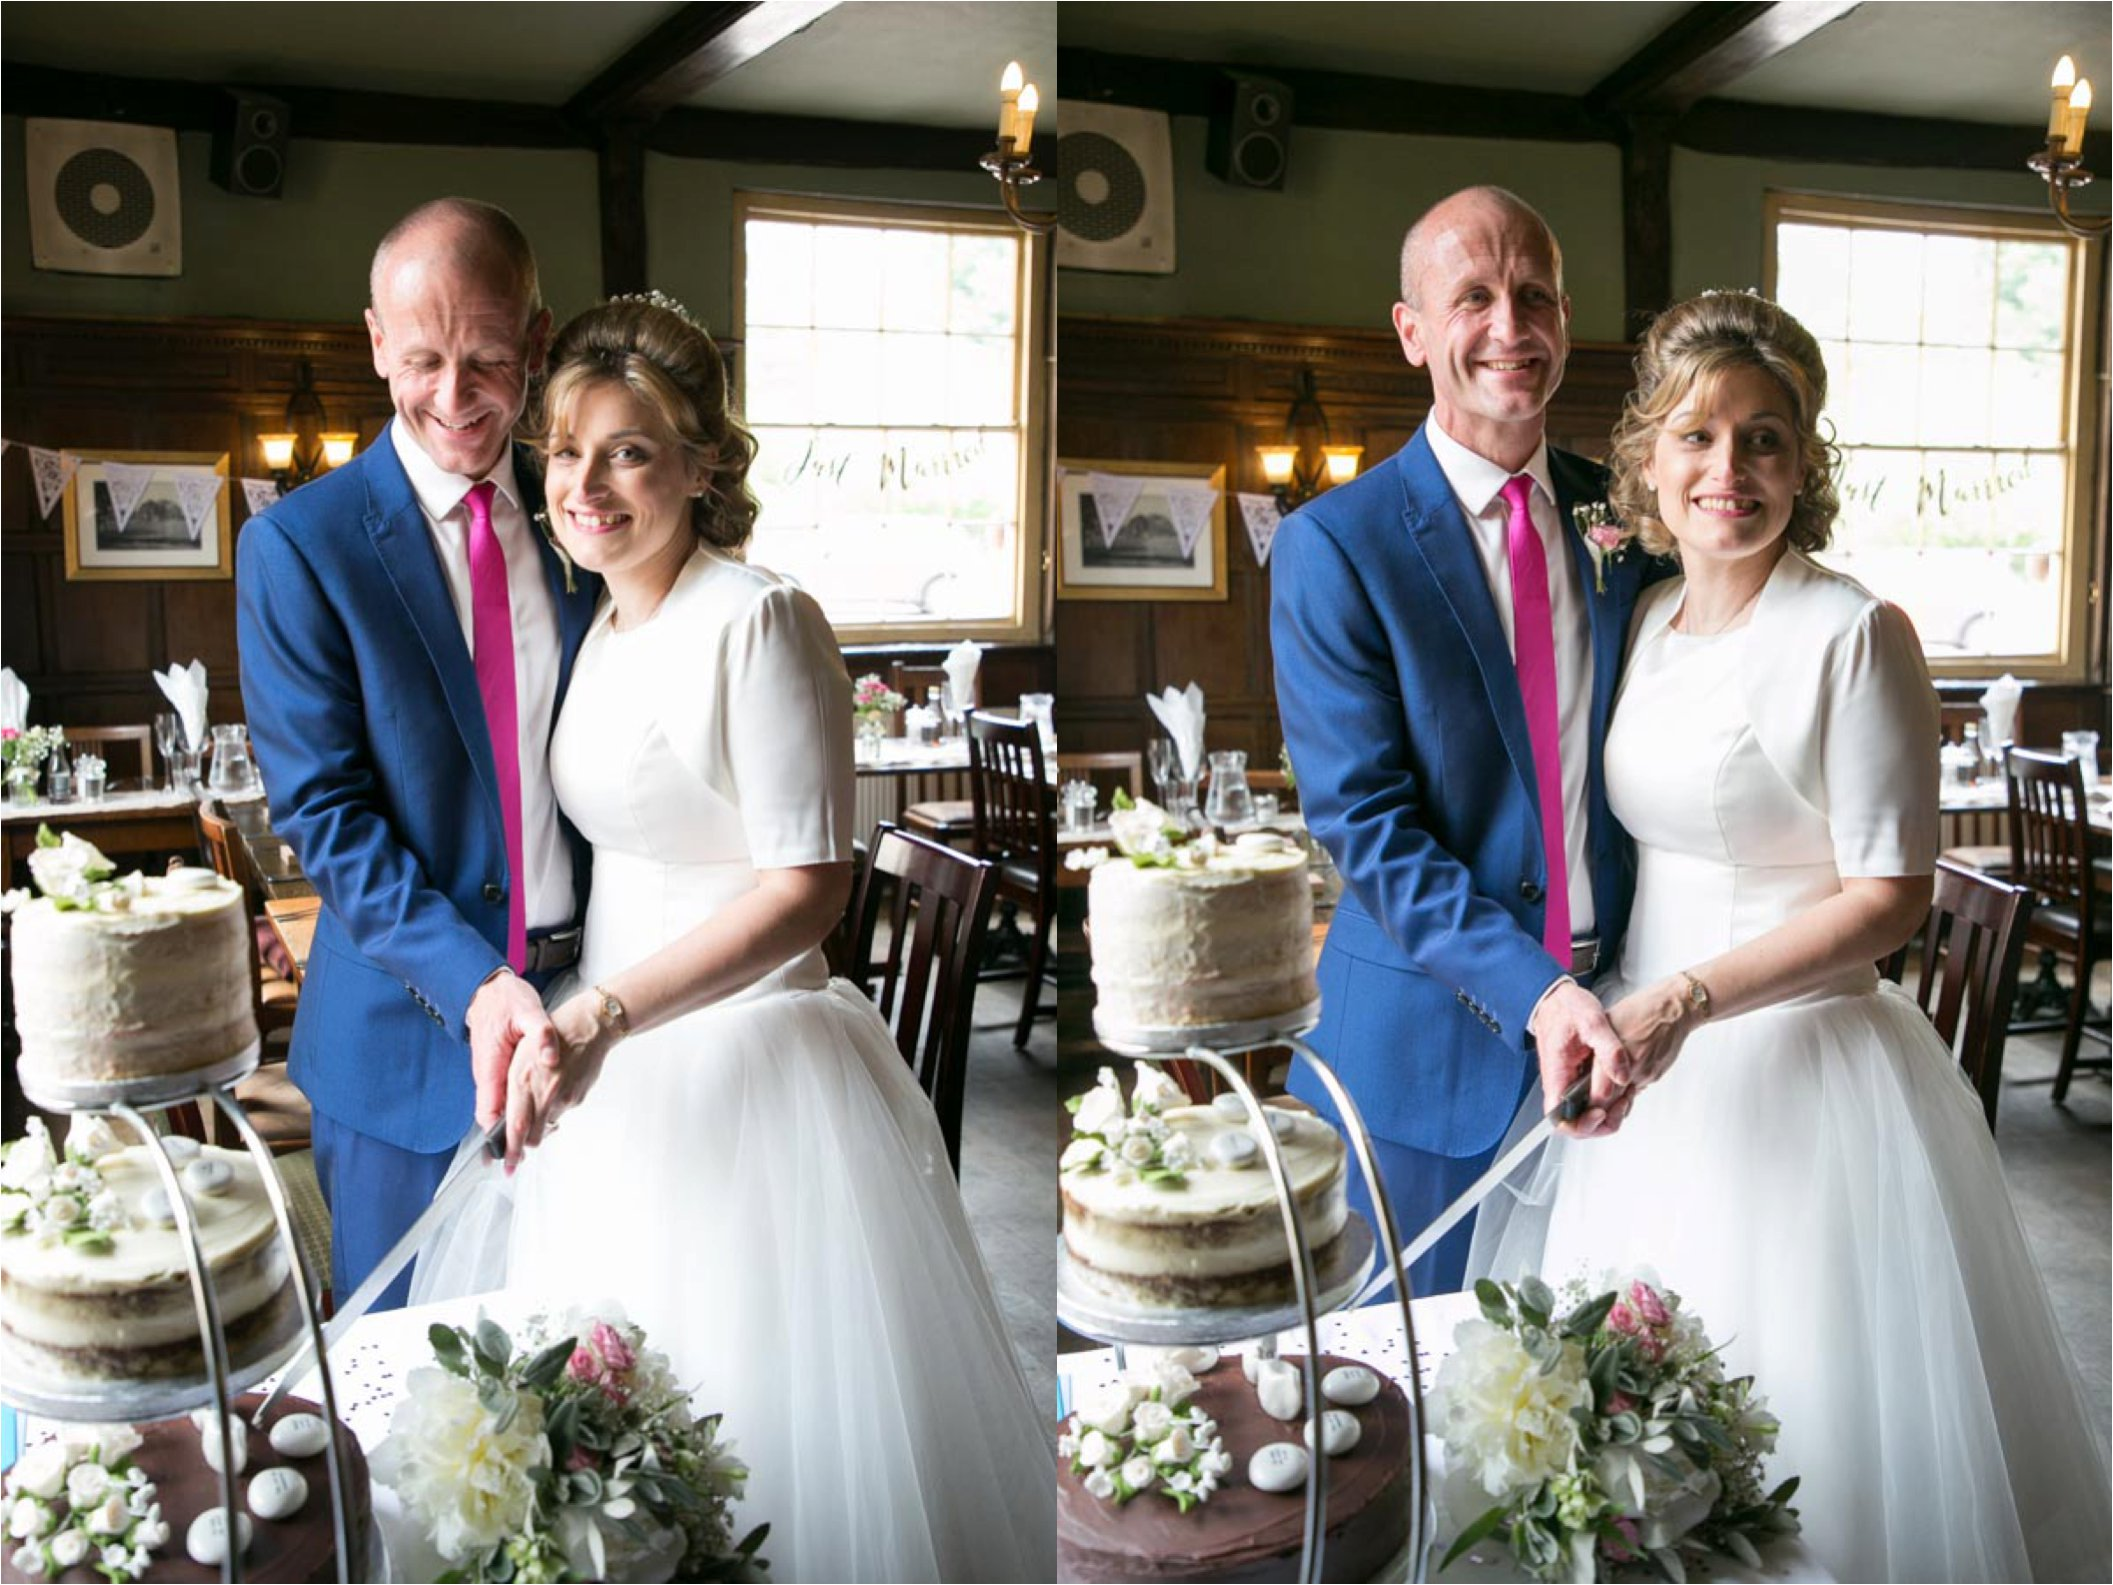 50's style wedding in bury st edmunds, cutting the cake